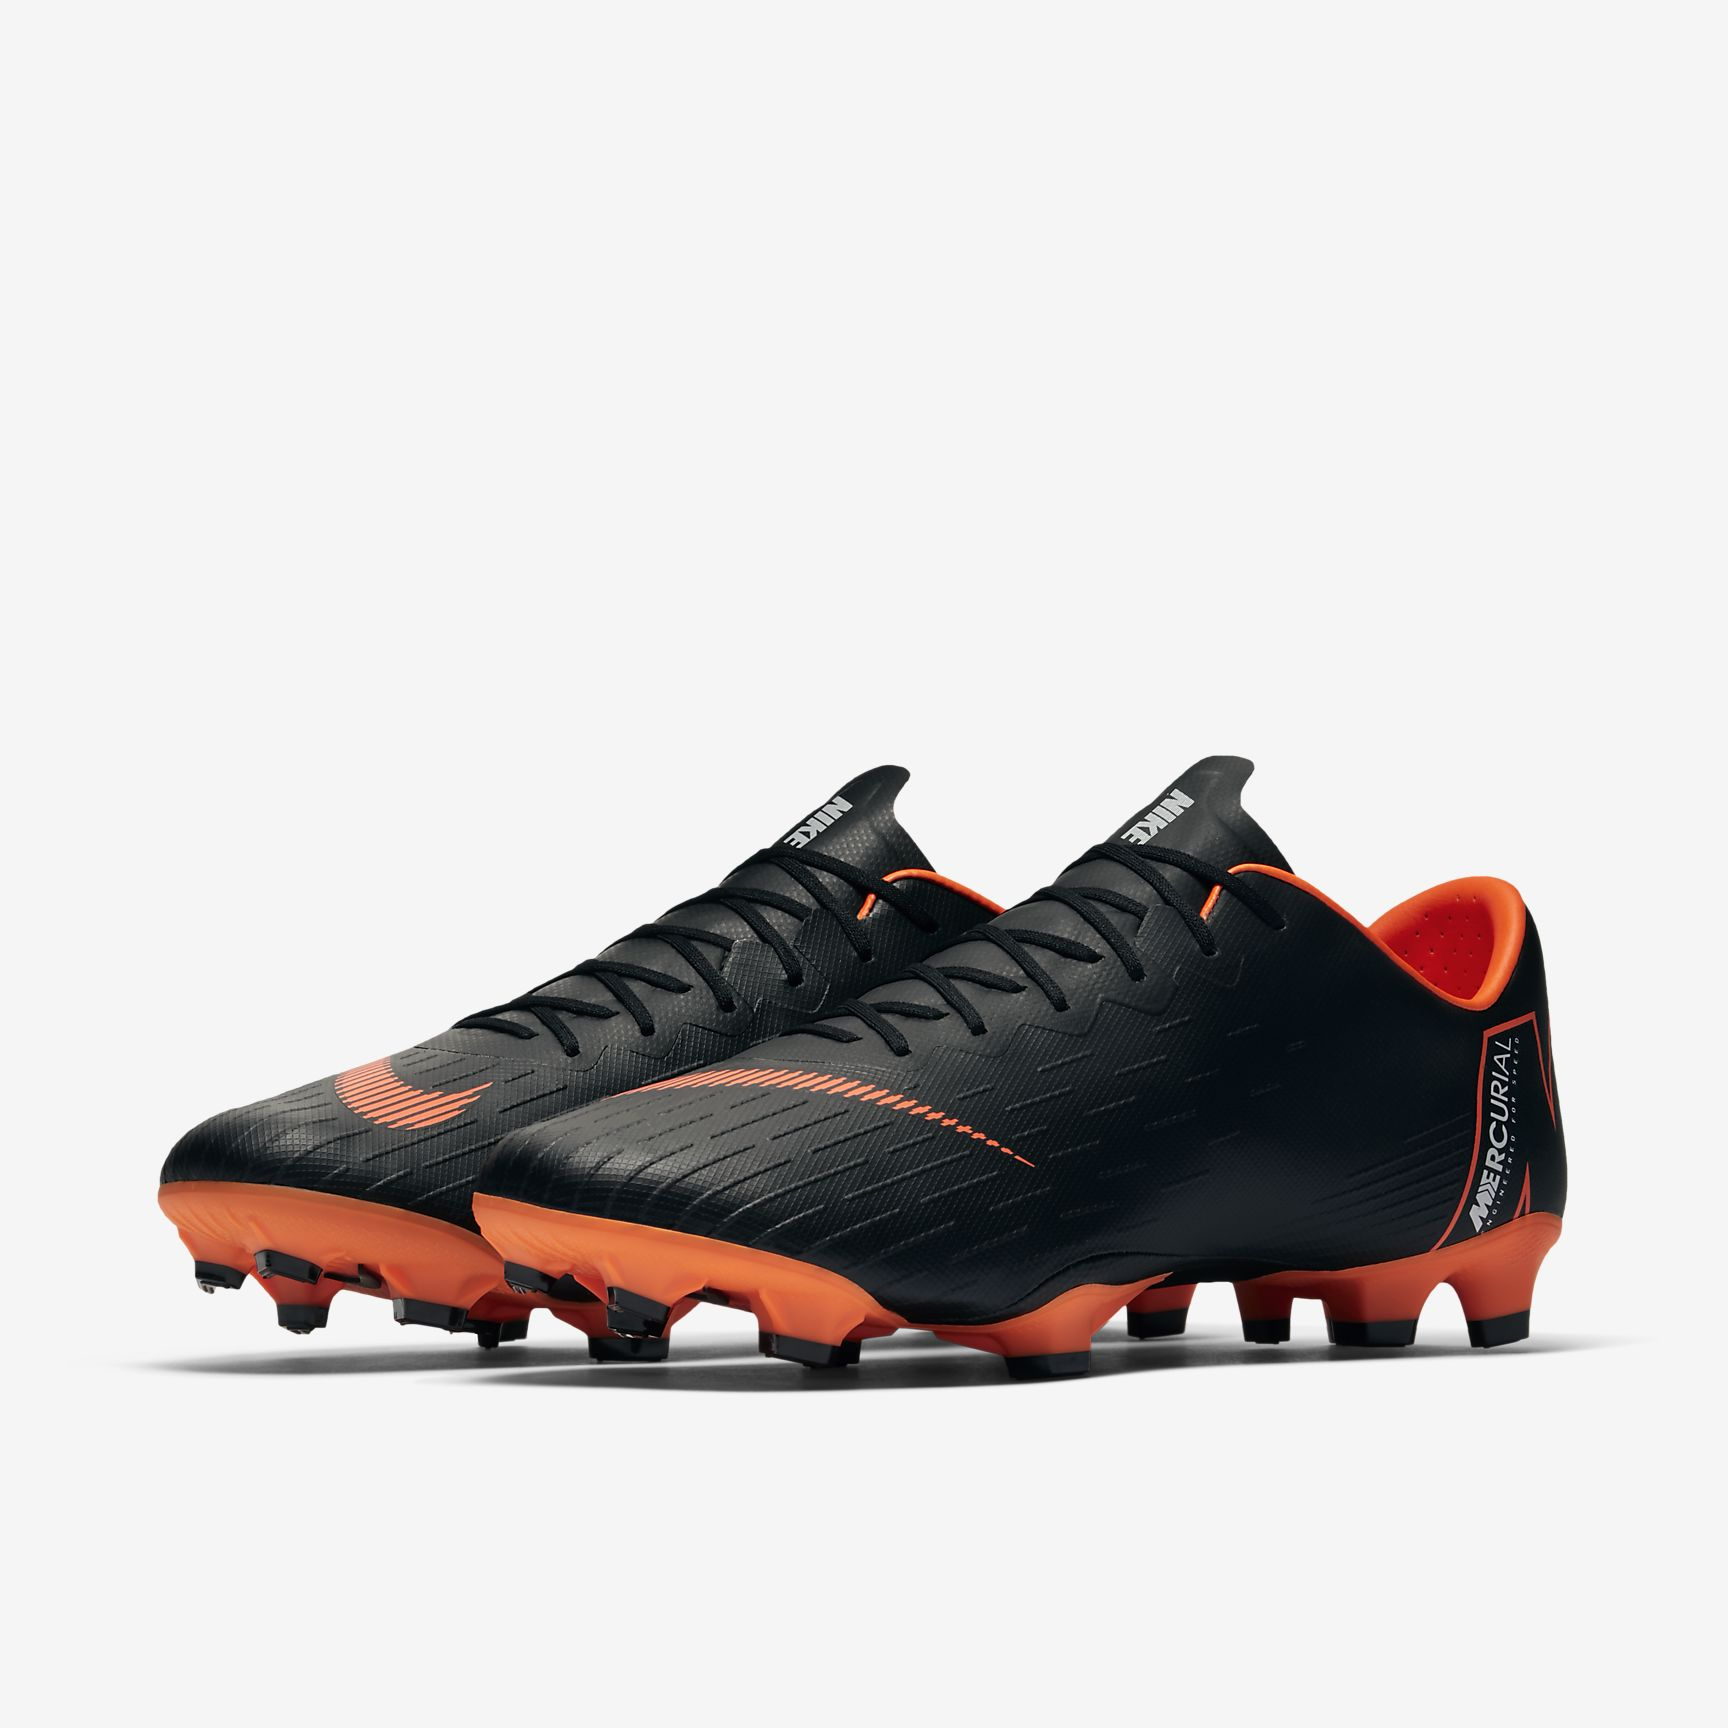 mercurial-vapor-xii-pro-firm-ground-soccer-cleat-N3LOPg.jpg